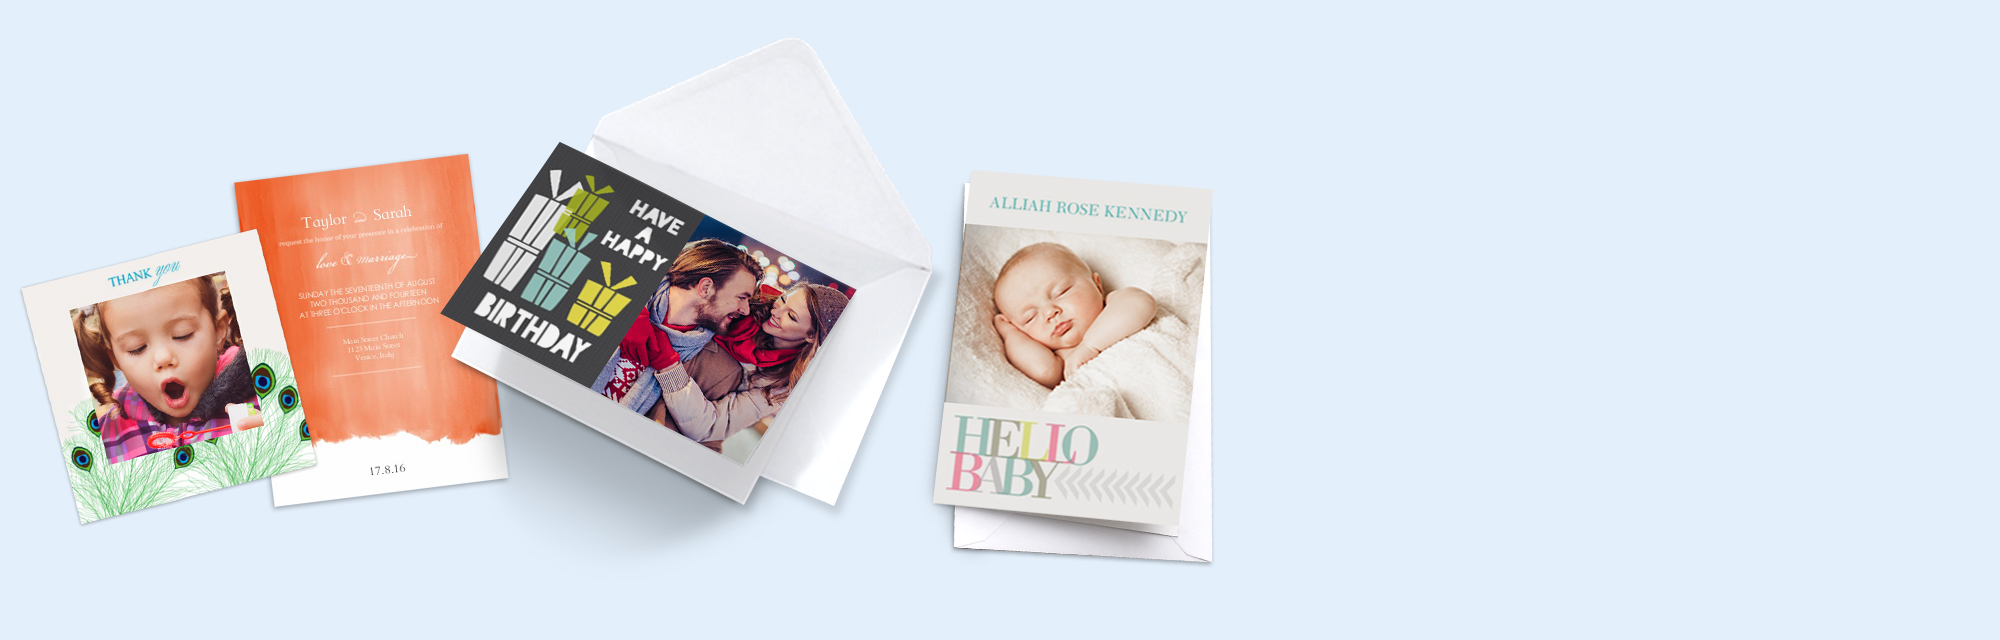 Personalised Photo Cards : Share your favourite snaps with loved ones and send them a personalised photo card. We have cards for all occasions and events including birthdays, weddings and new baby.